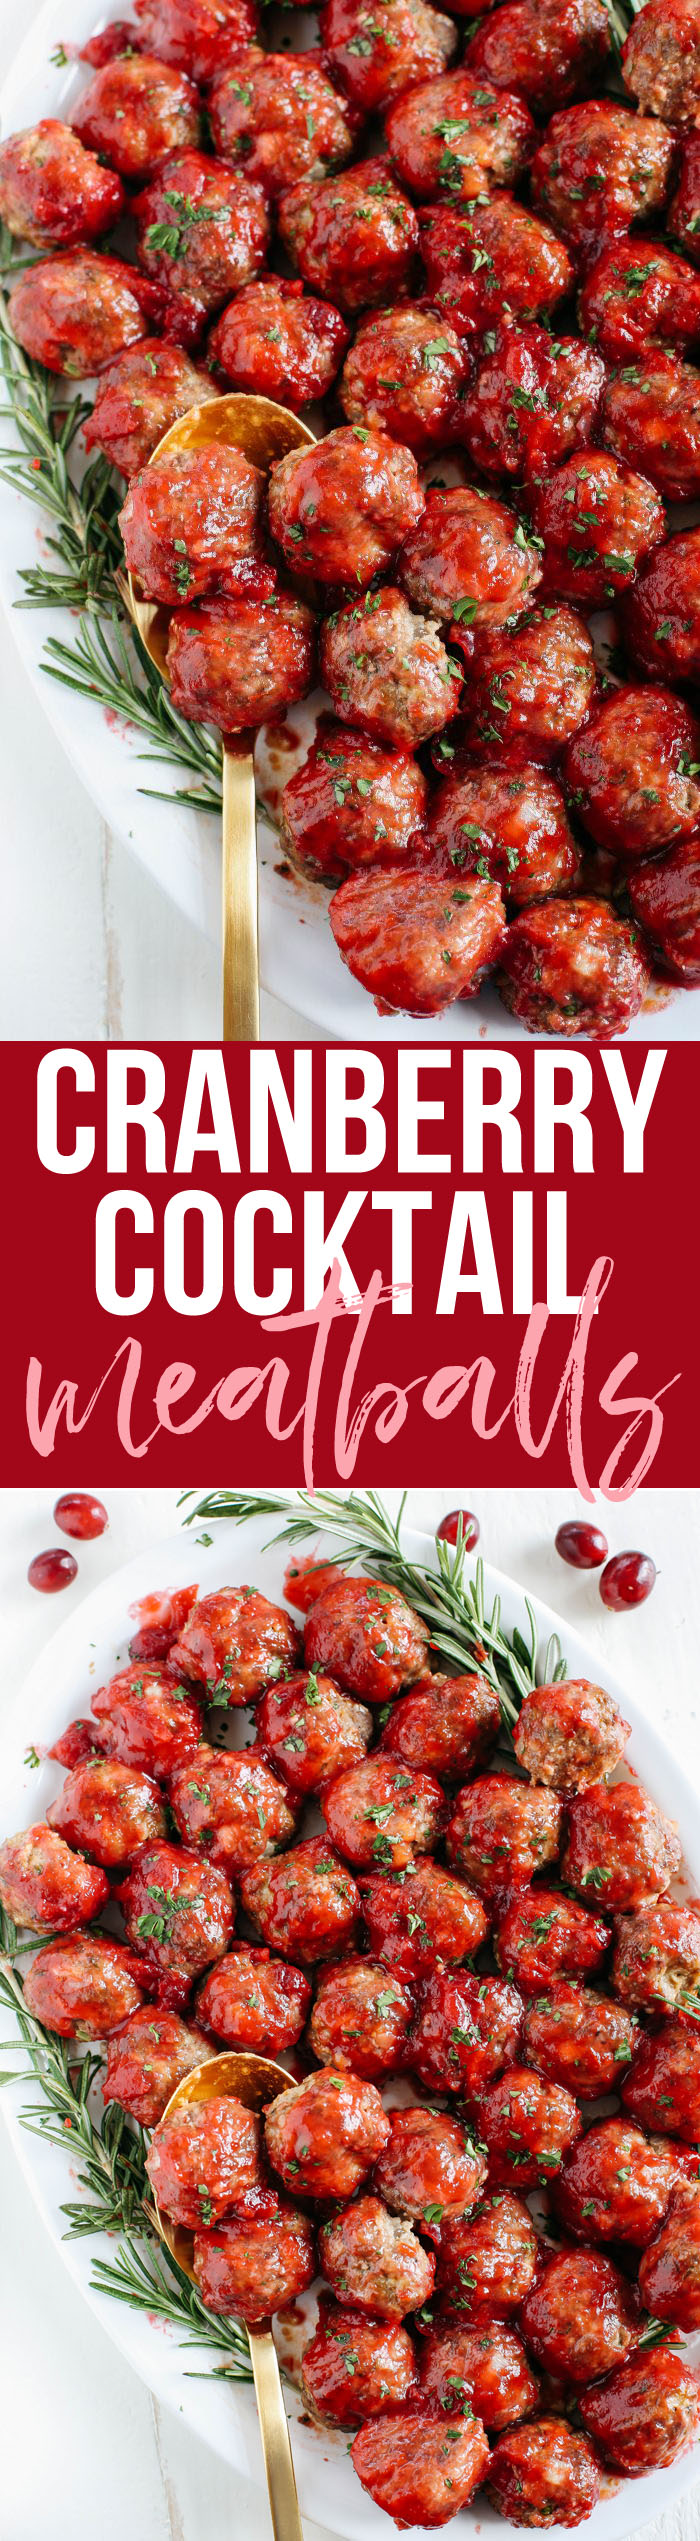 These Cranberry Cocktail Meatballs make the perfect holiday appetizer that are easy to throw together with the perfect blend of sweet and savory flavors!